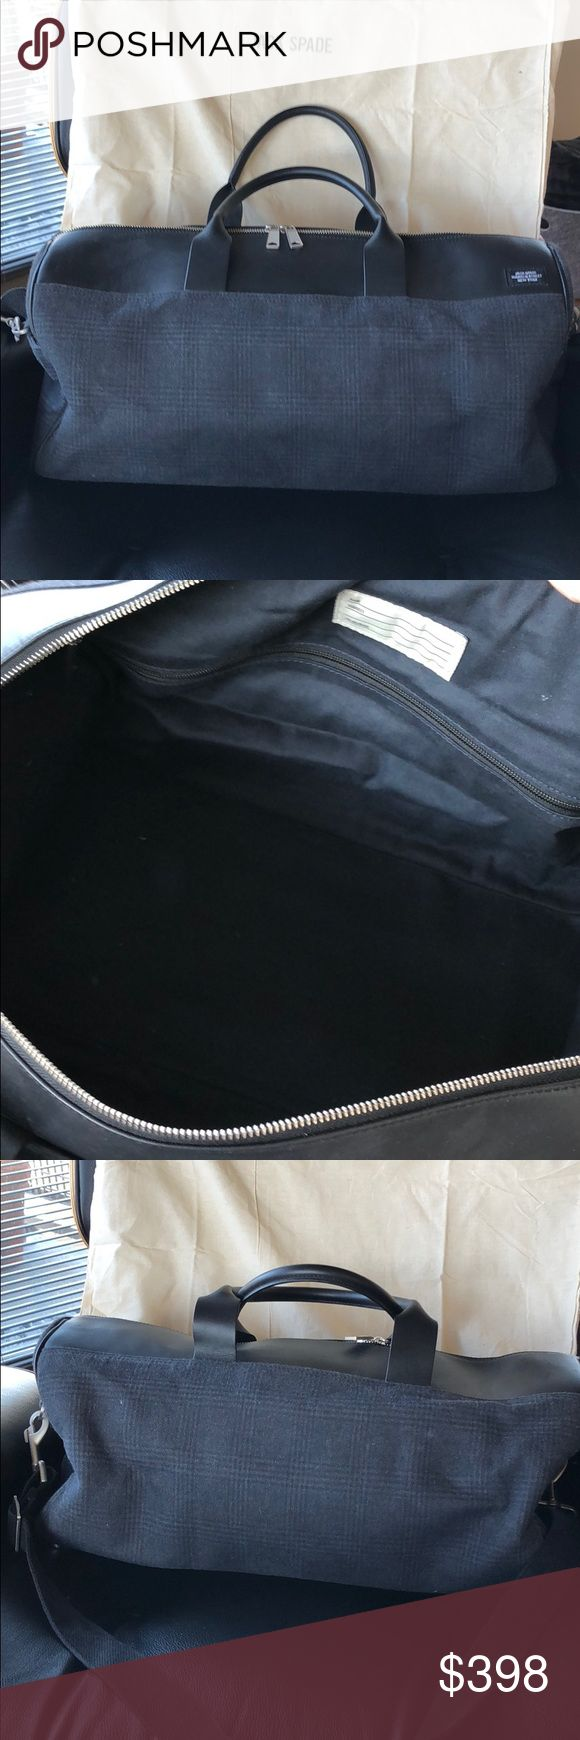 Men's Jack Spade Tartan/Leather Weekender Bag Like new men's weekender bag from Jack Spade. Has only been used once and has been cared for in the protective cover that comes with each Jack Spade bag. Original Price: $498 Protective cover and strap included. Jack Spade Bags Luggage & Travel Bags